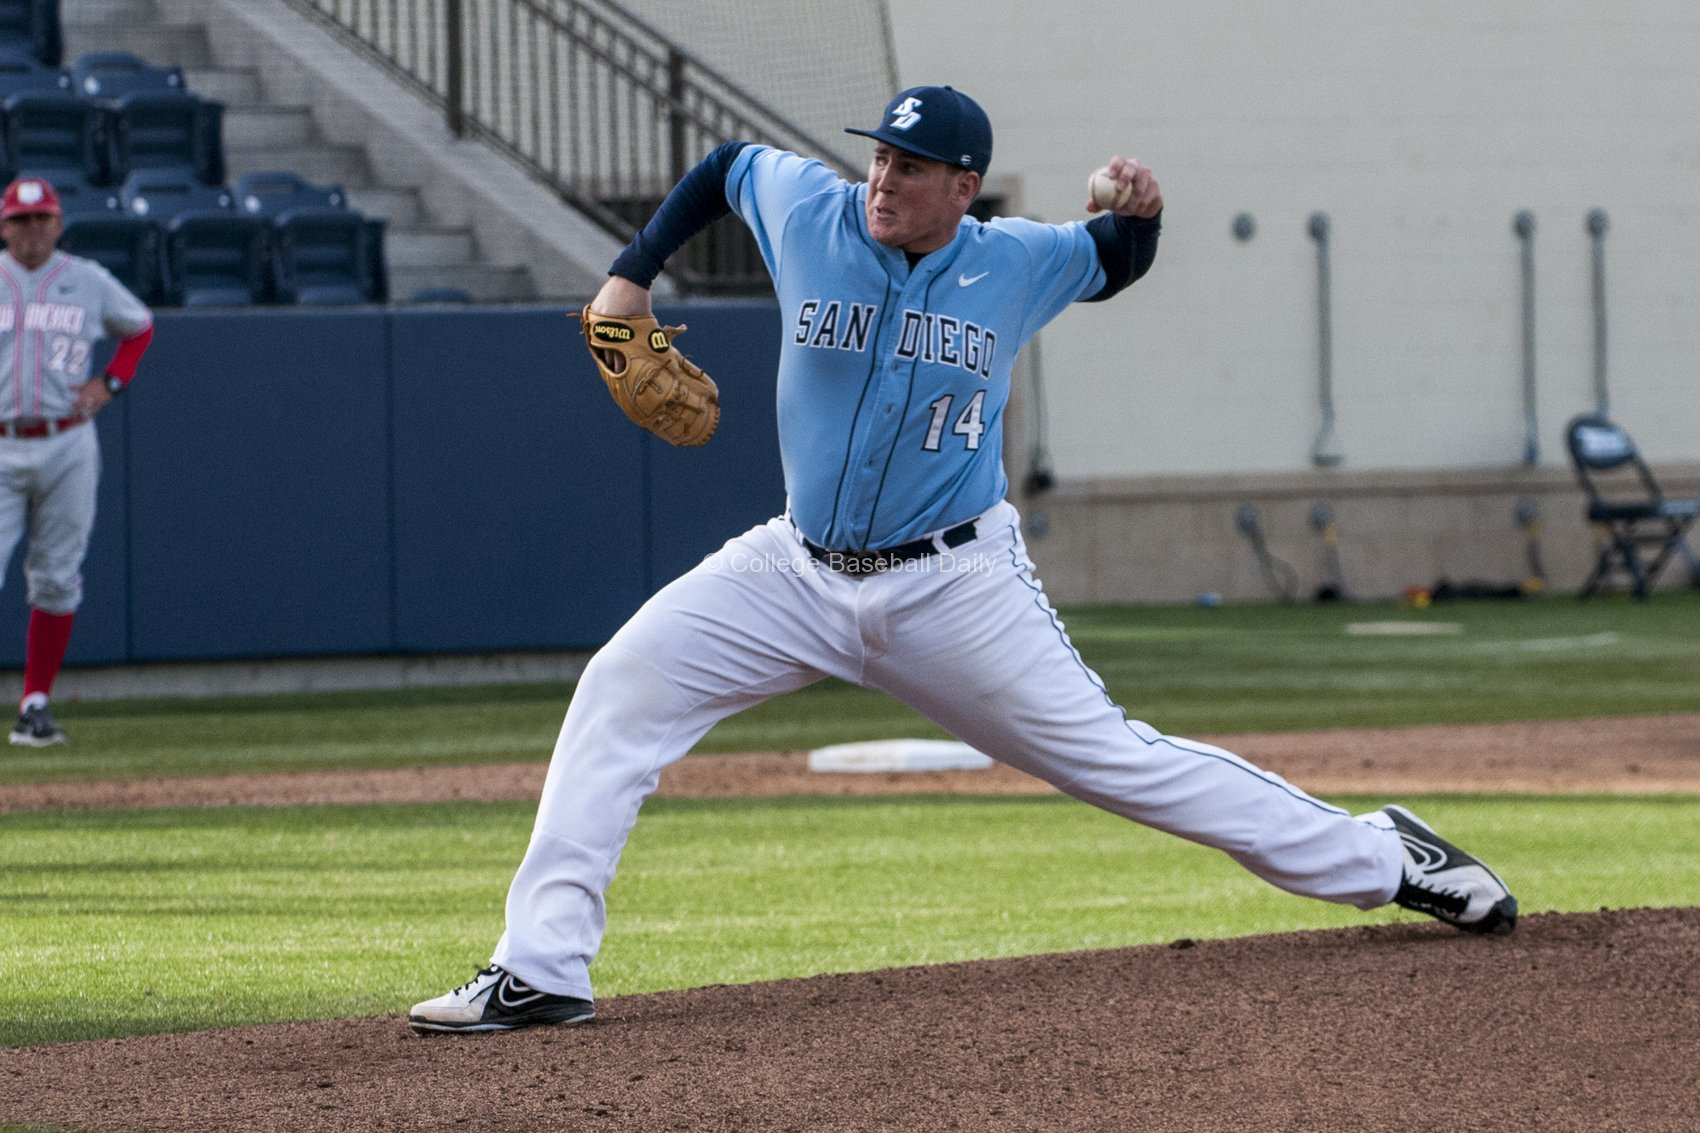 Troy Conyers, gave the Torero's 3 strong innings